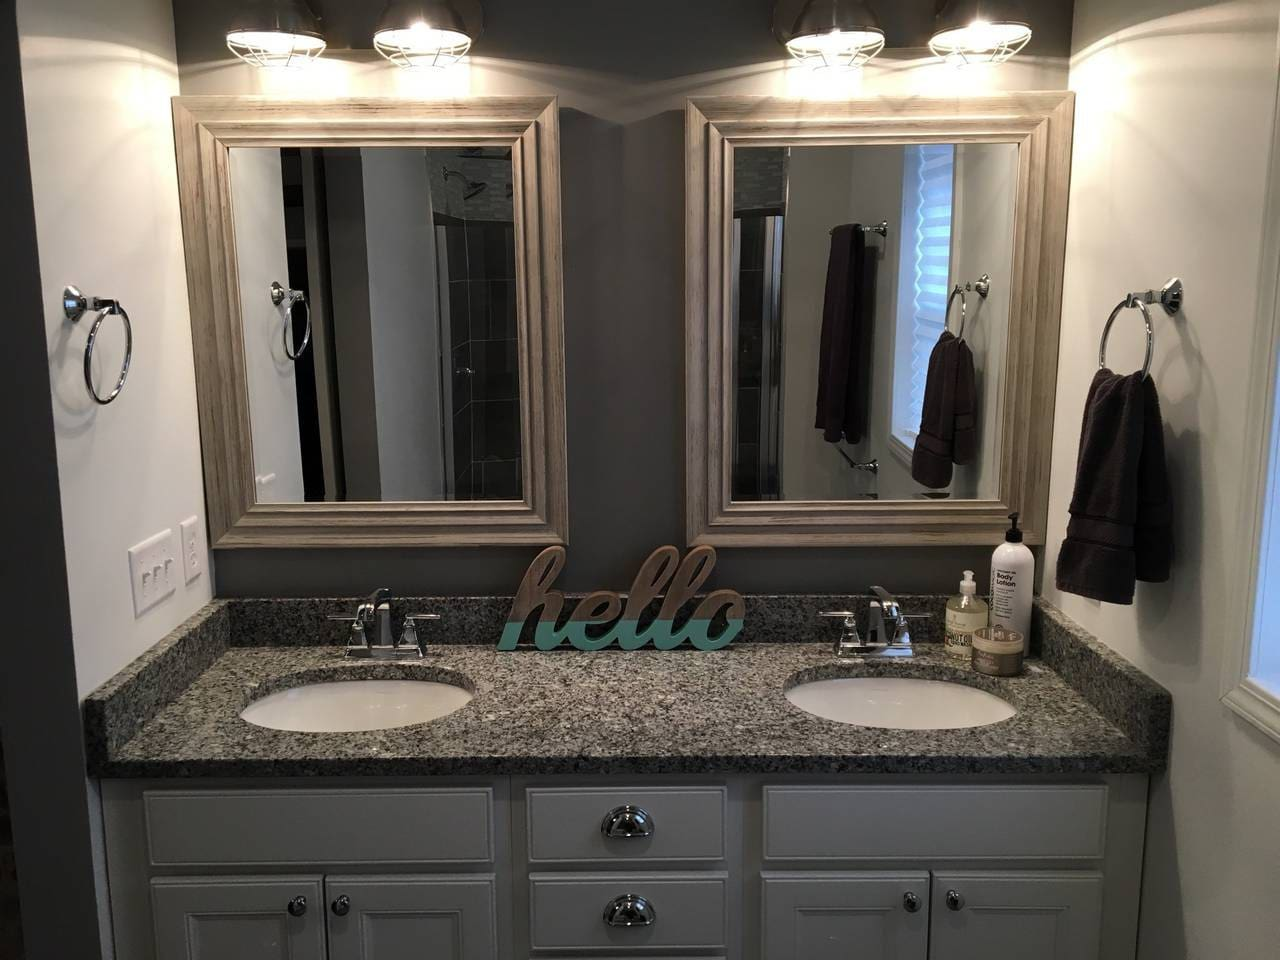 Dual sinks in large master bathroom offer plenty of space to stretch out and prepare for your day!